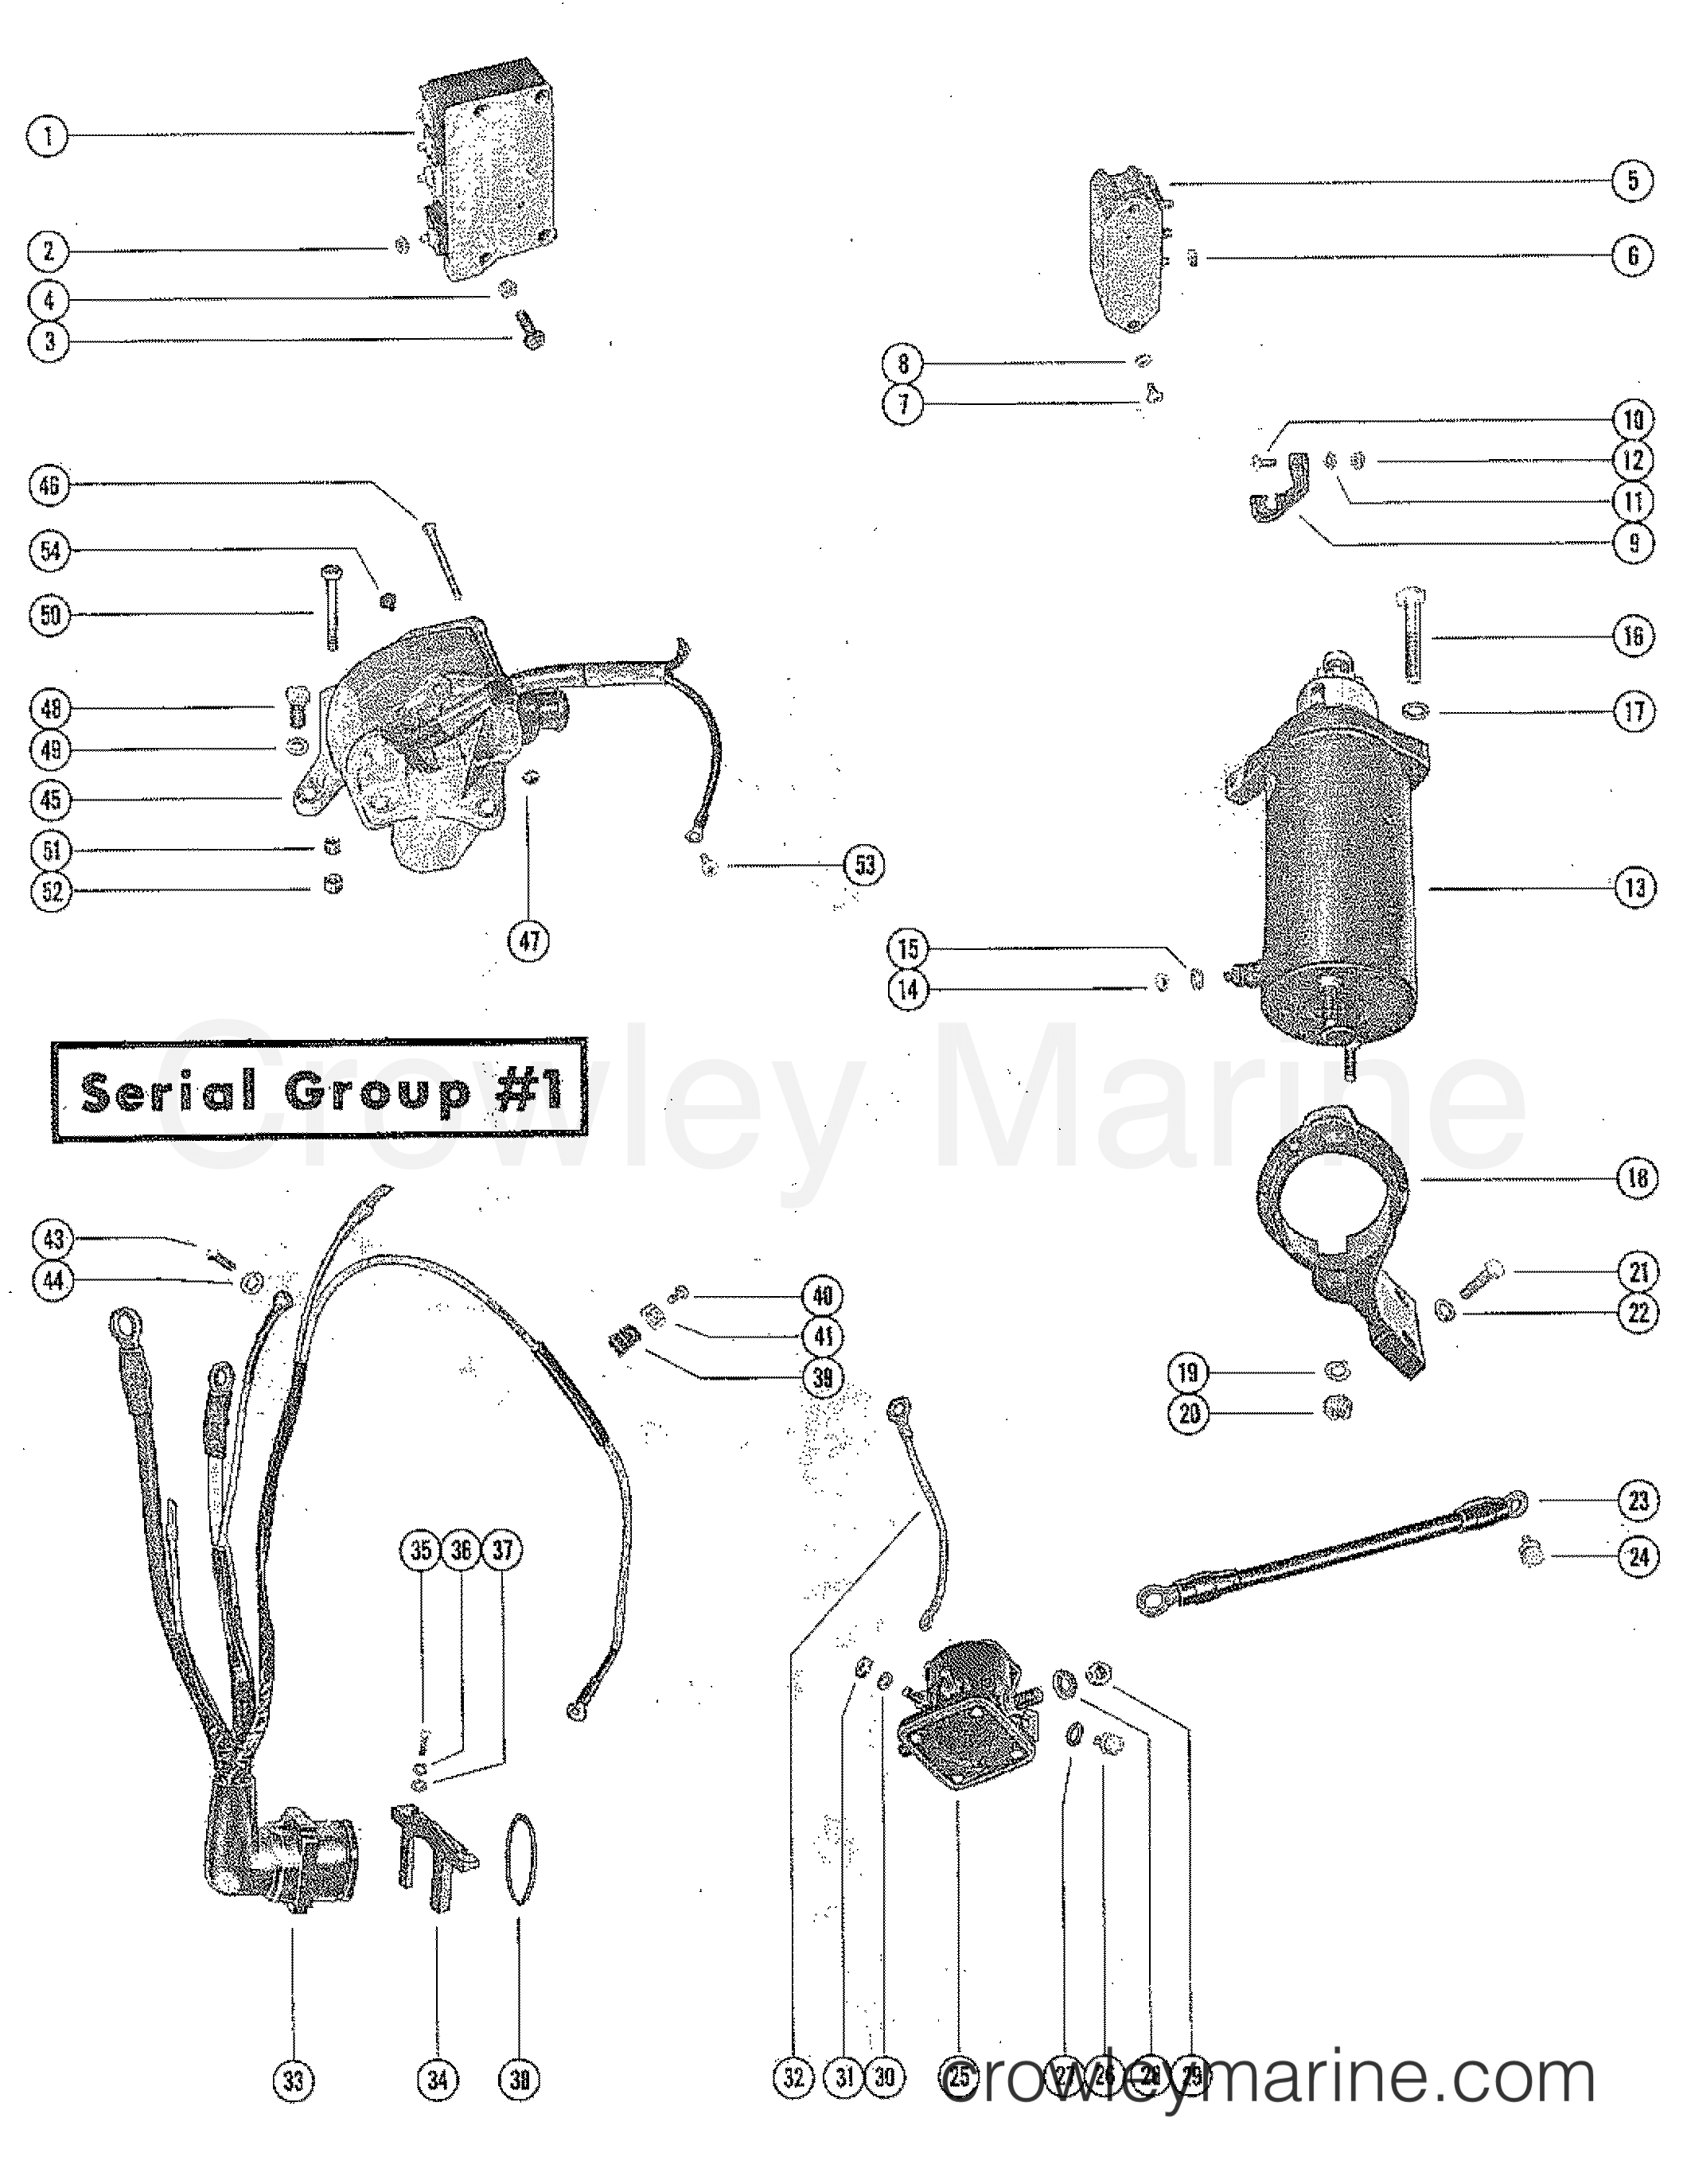 starter motor and wiring harness  serial group  1